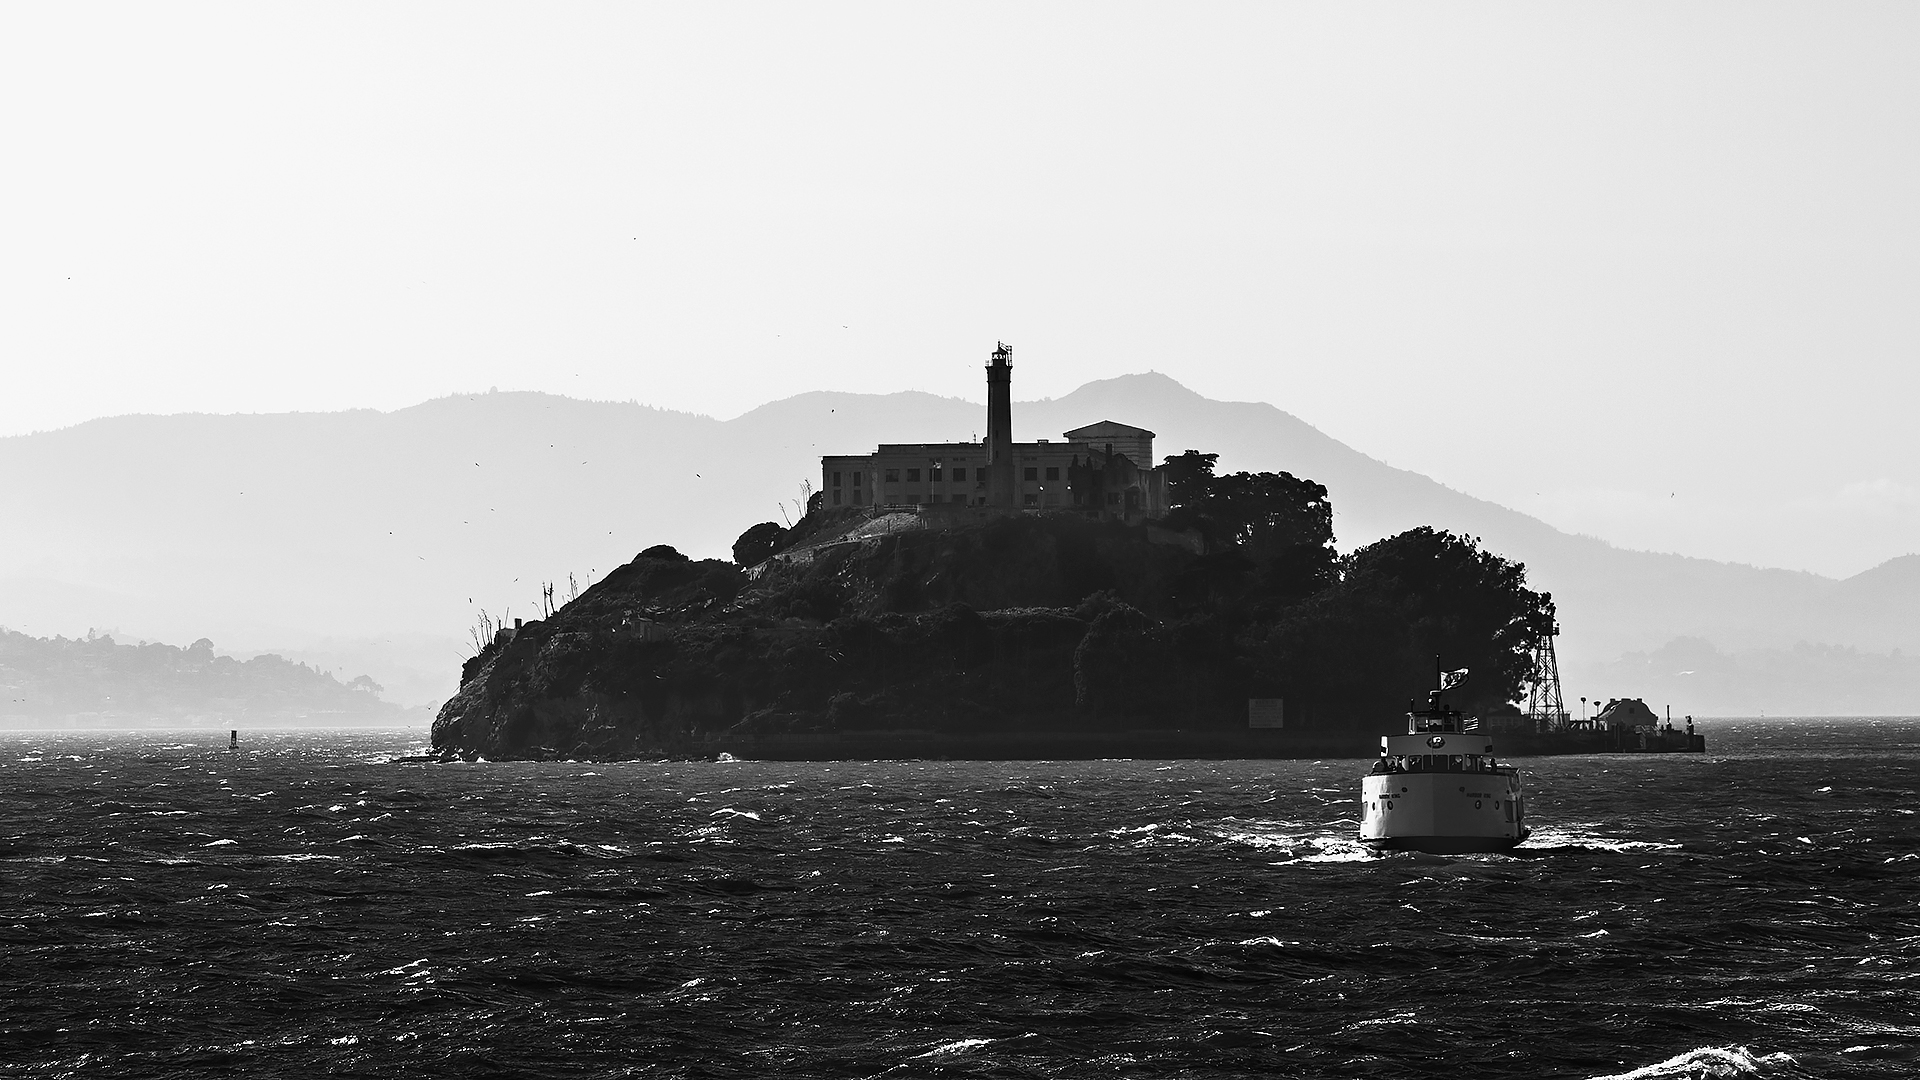 On the boat heading out from Alcatraz Island. The view out behind the boat looked like a scene out of a movie.